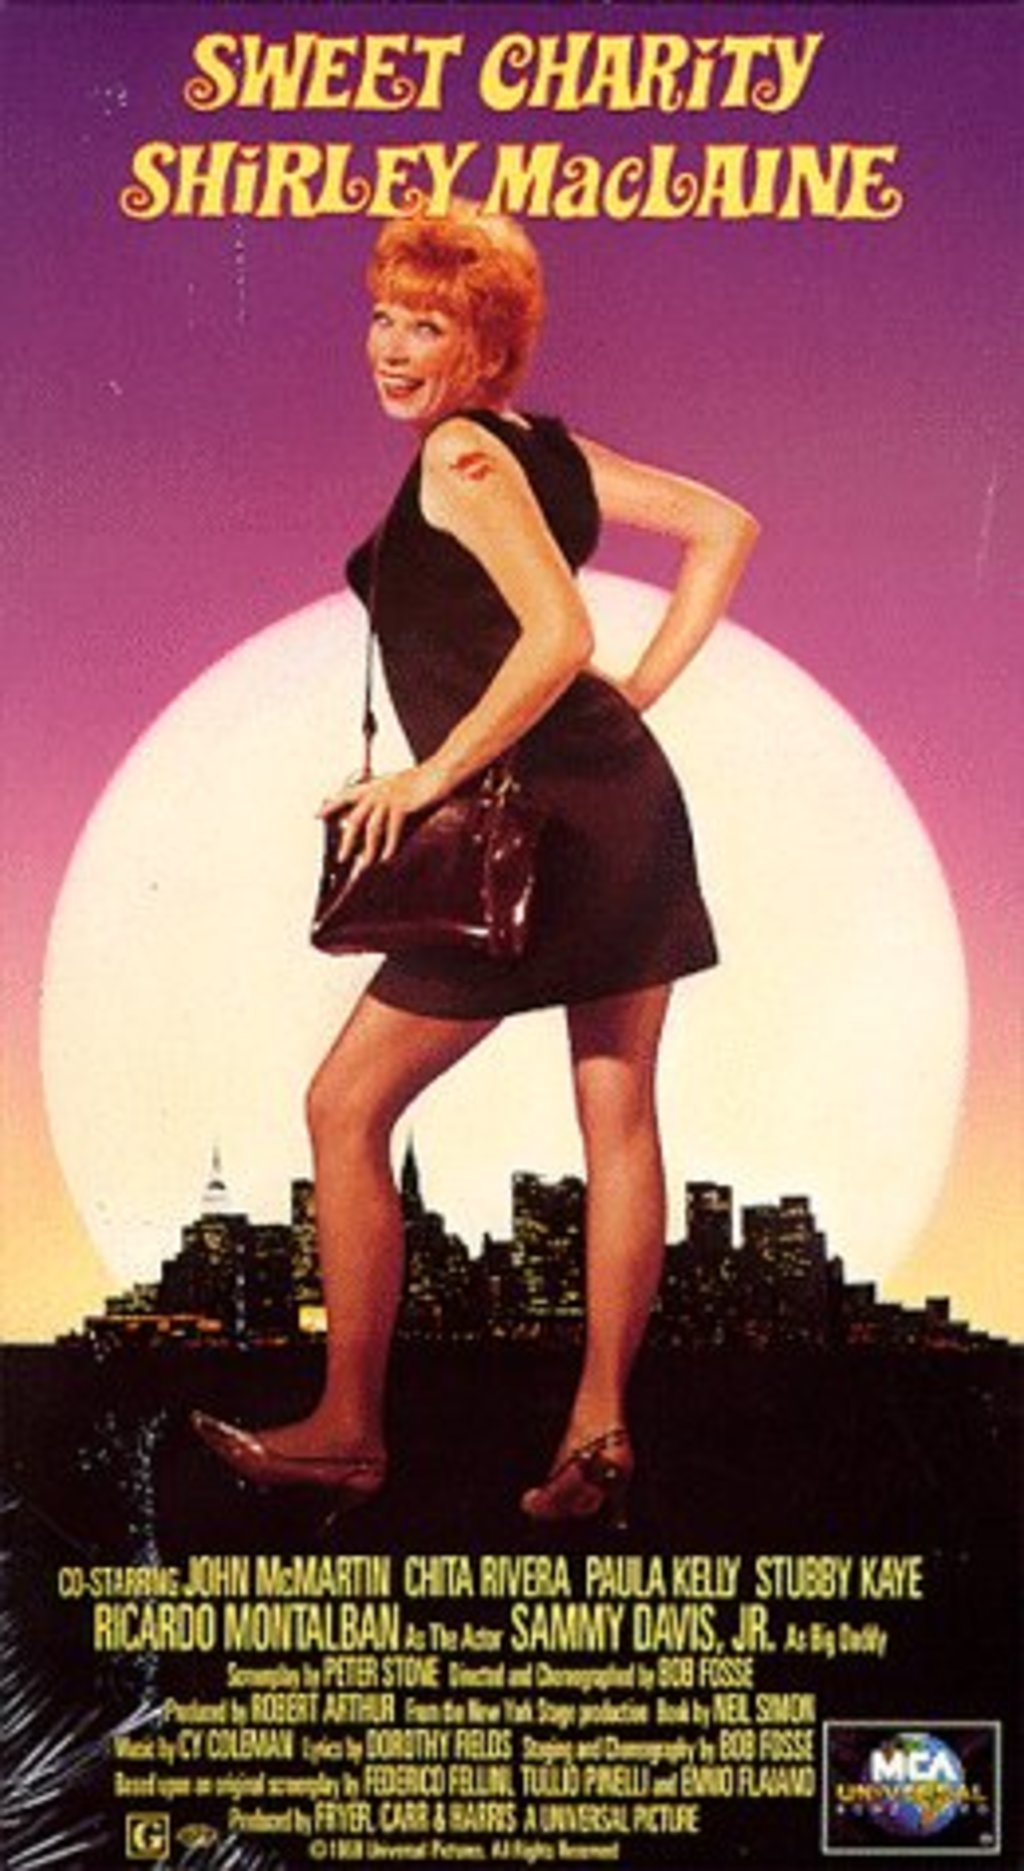 Watch Sweet Charity on Netflix Today! | NetflixMovies.com